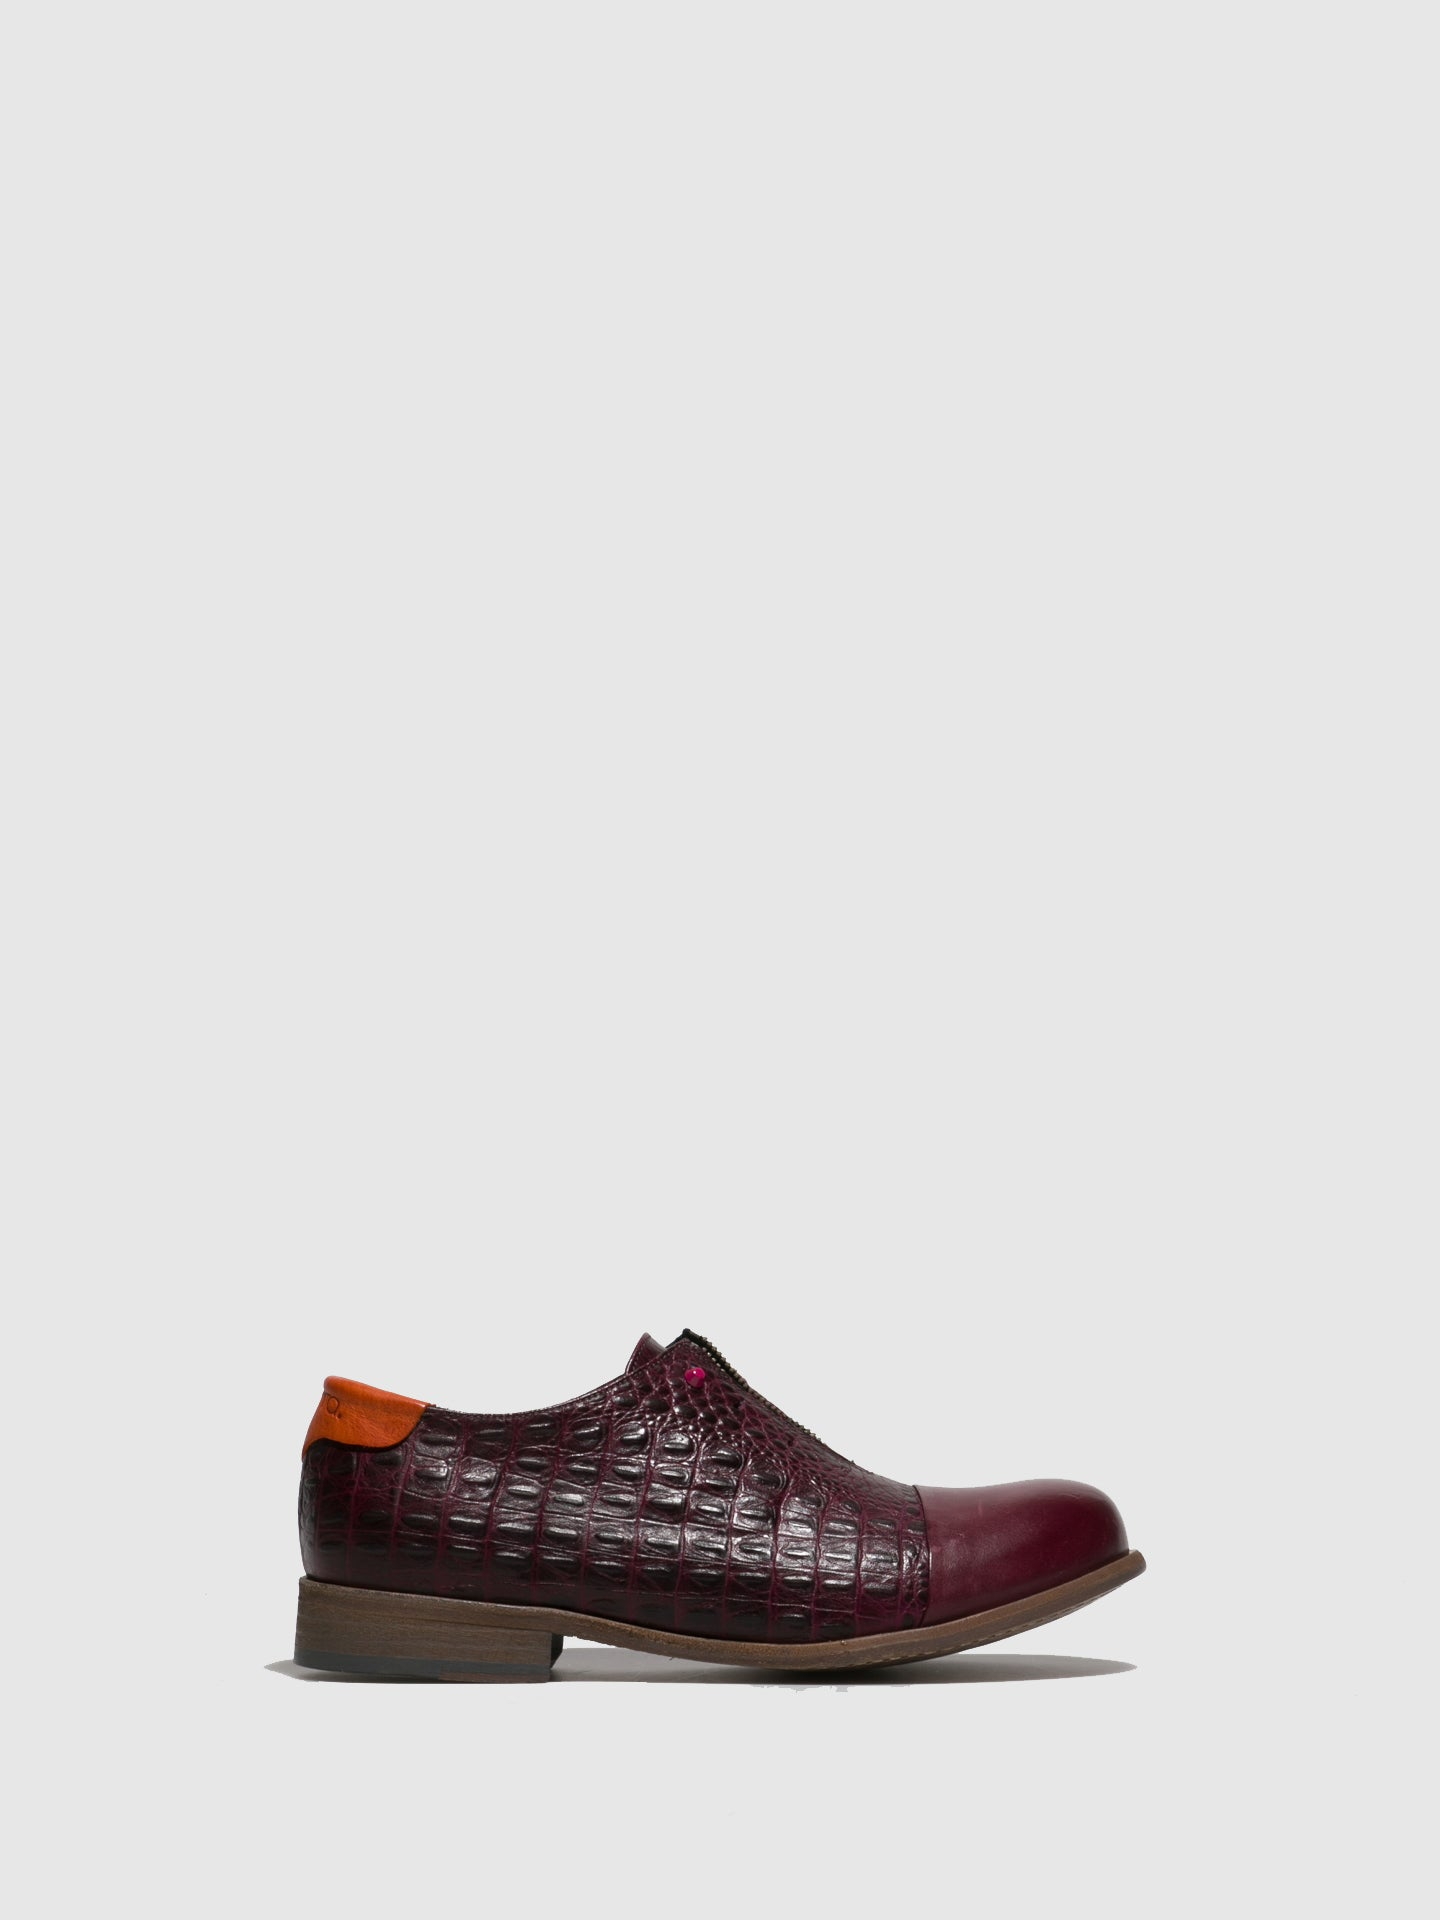 Pintta Shoes DarkRed Metallic Detail Loafers